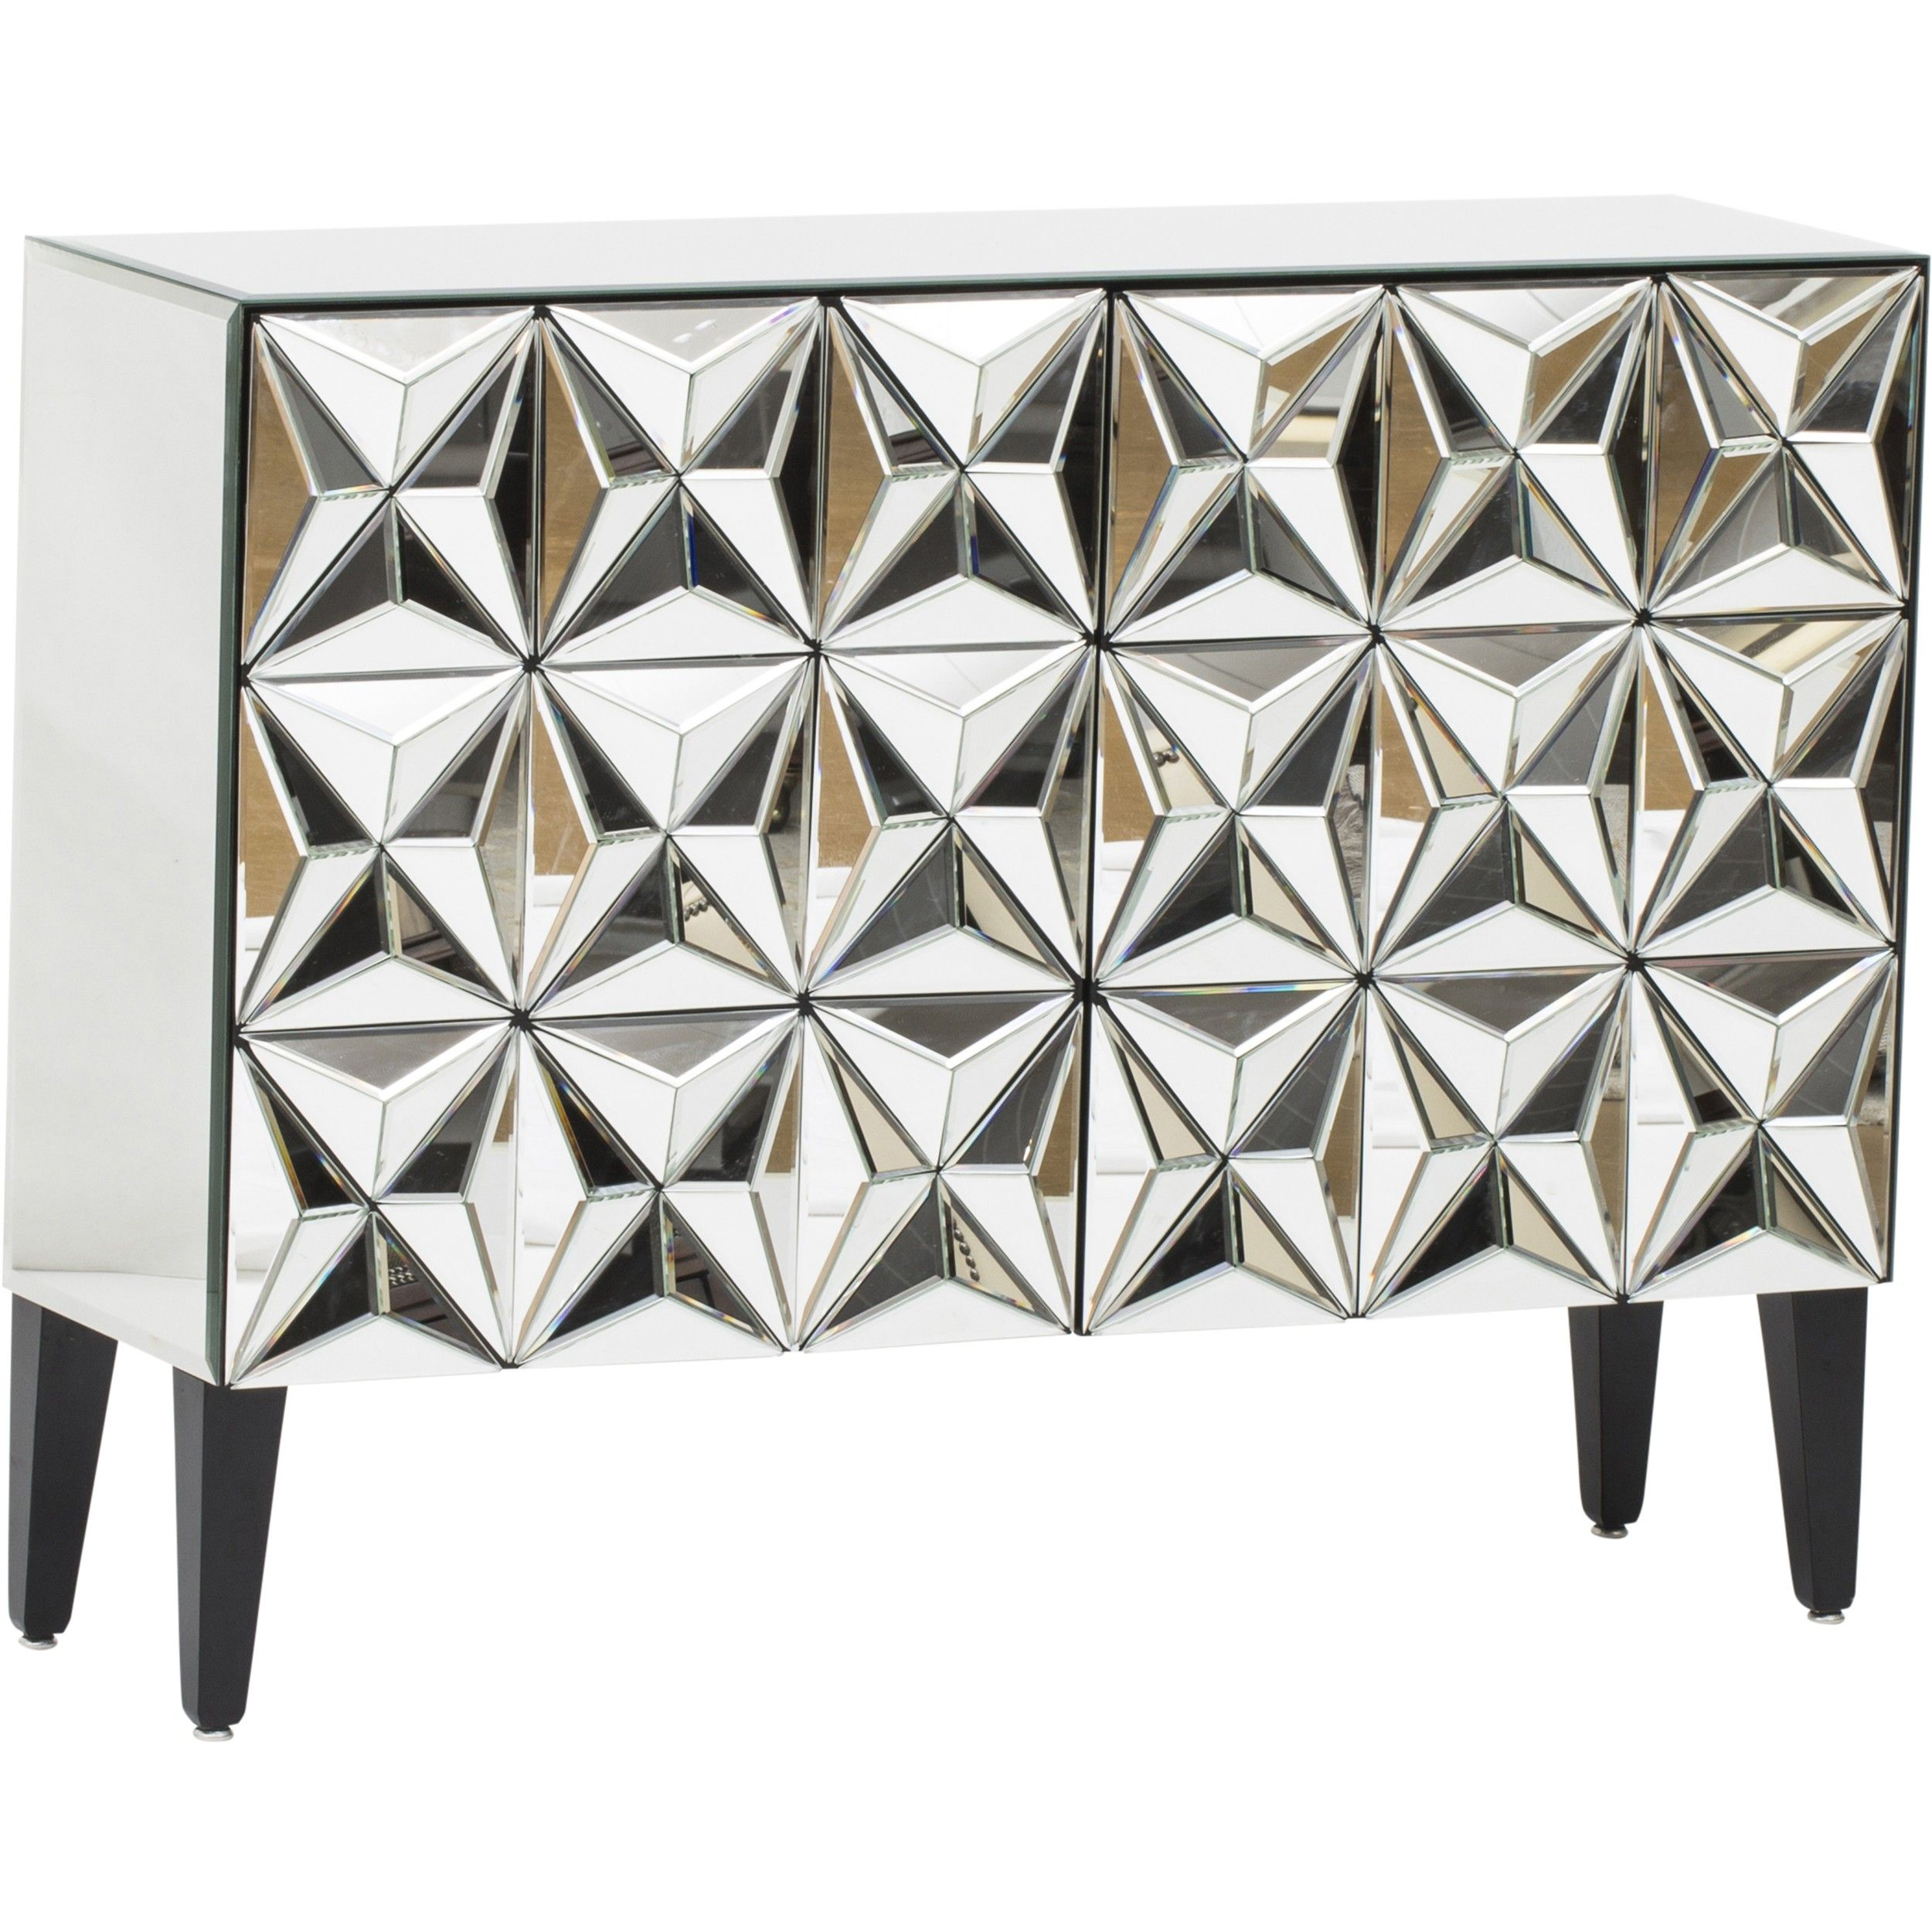 649.00 Hollywood Geometric Mirrored Chest - Living Room - Storage ...